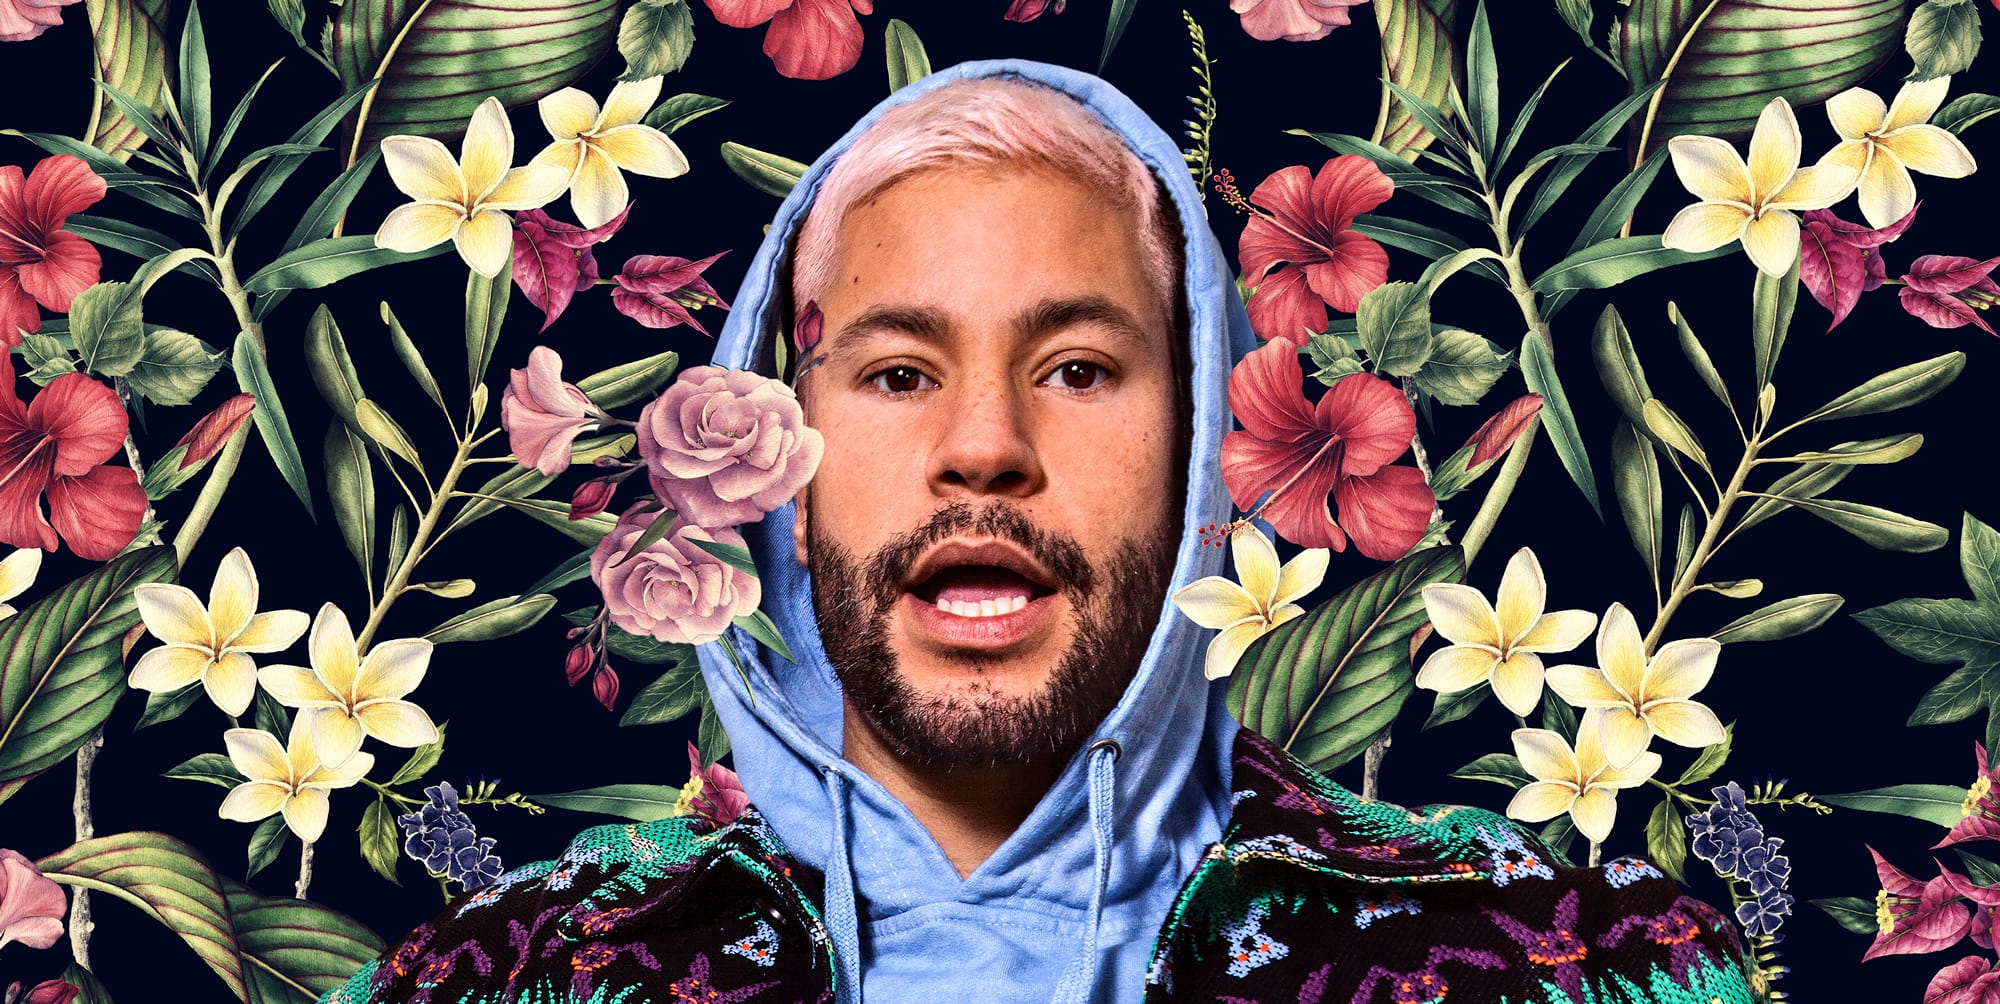 pete-philly-flowers-optimized.jpg